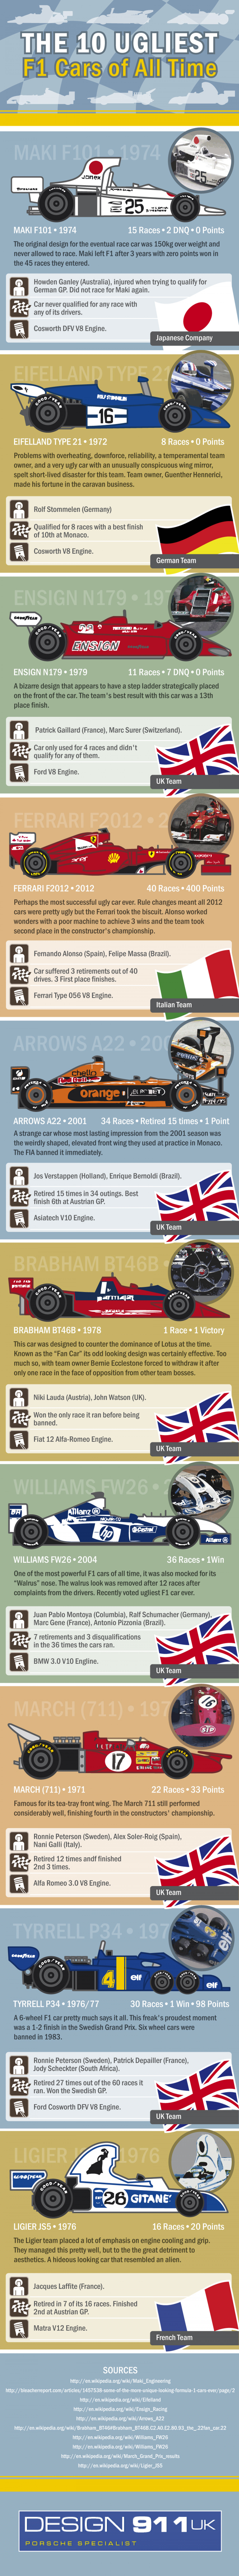 The World's Ugliest F1 Cars Infographic